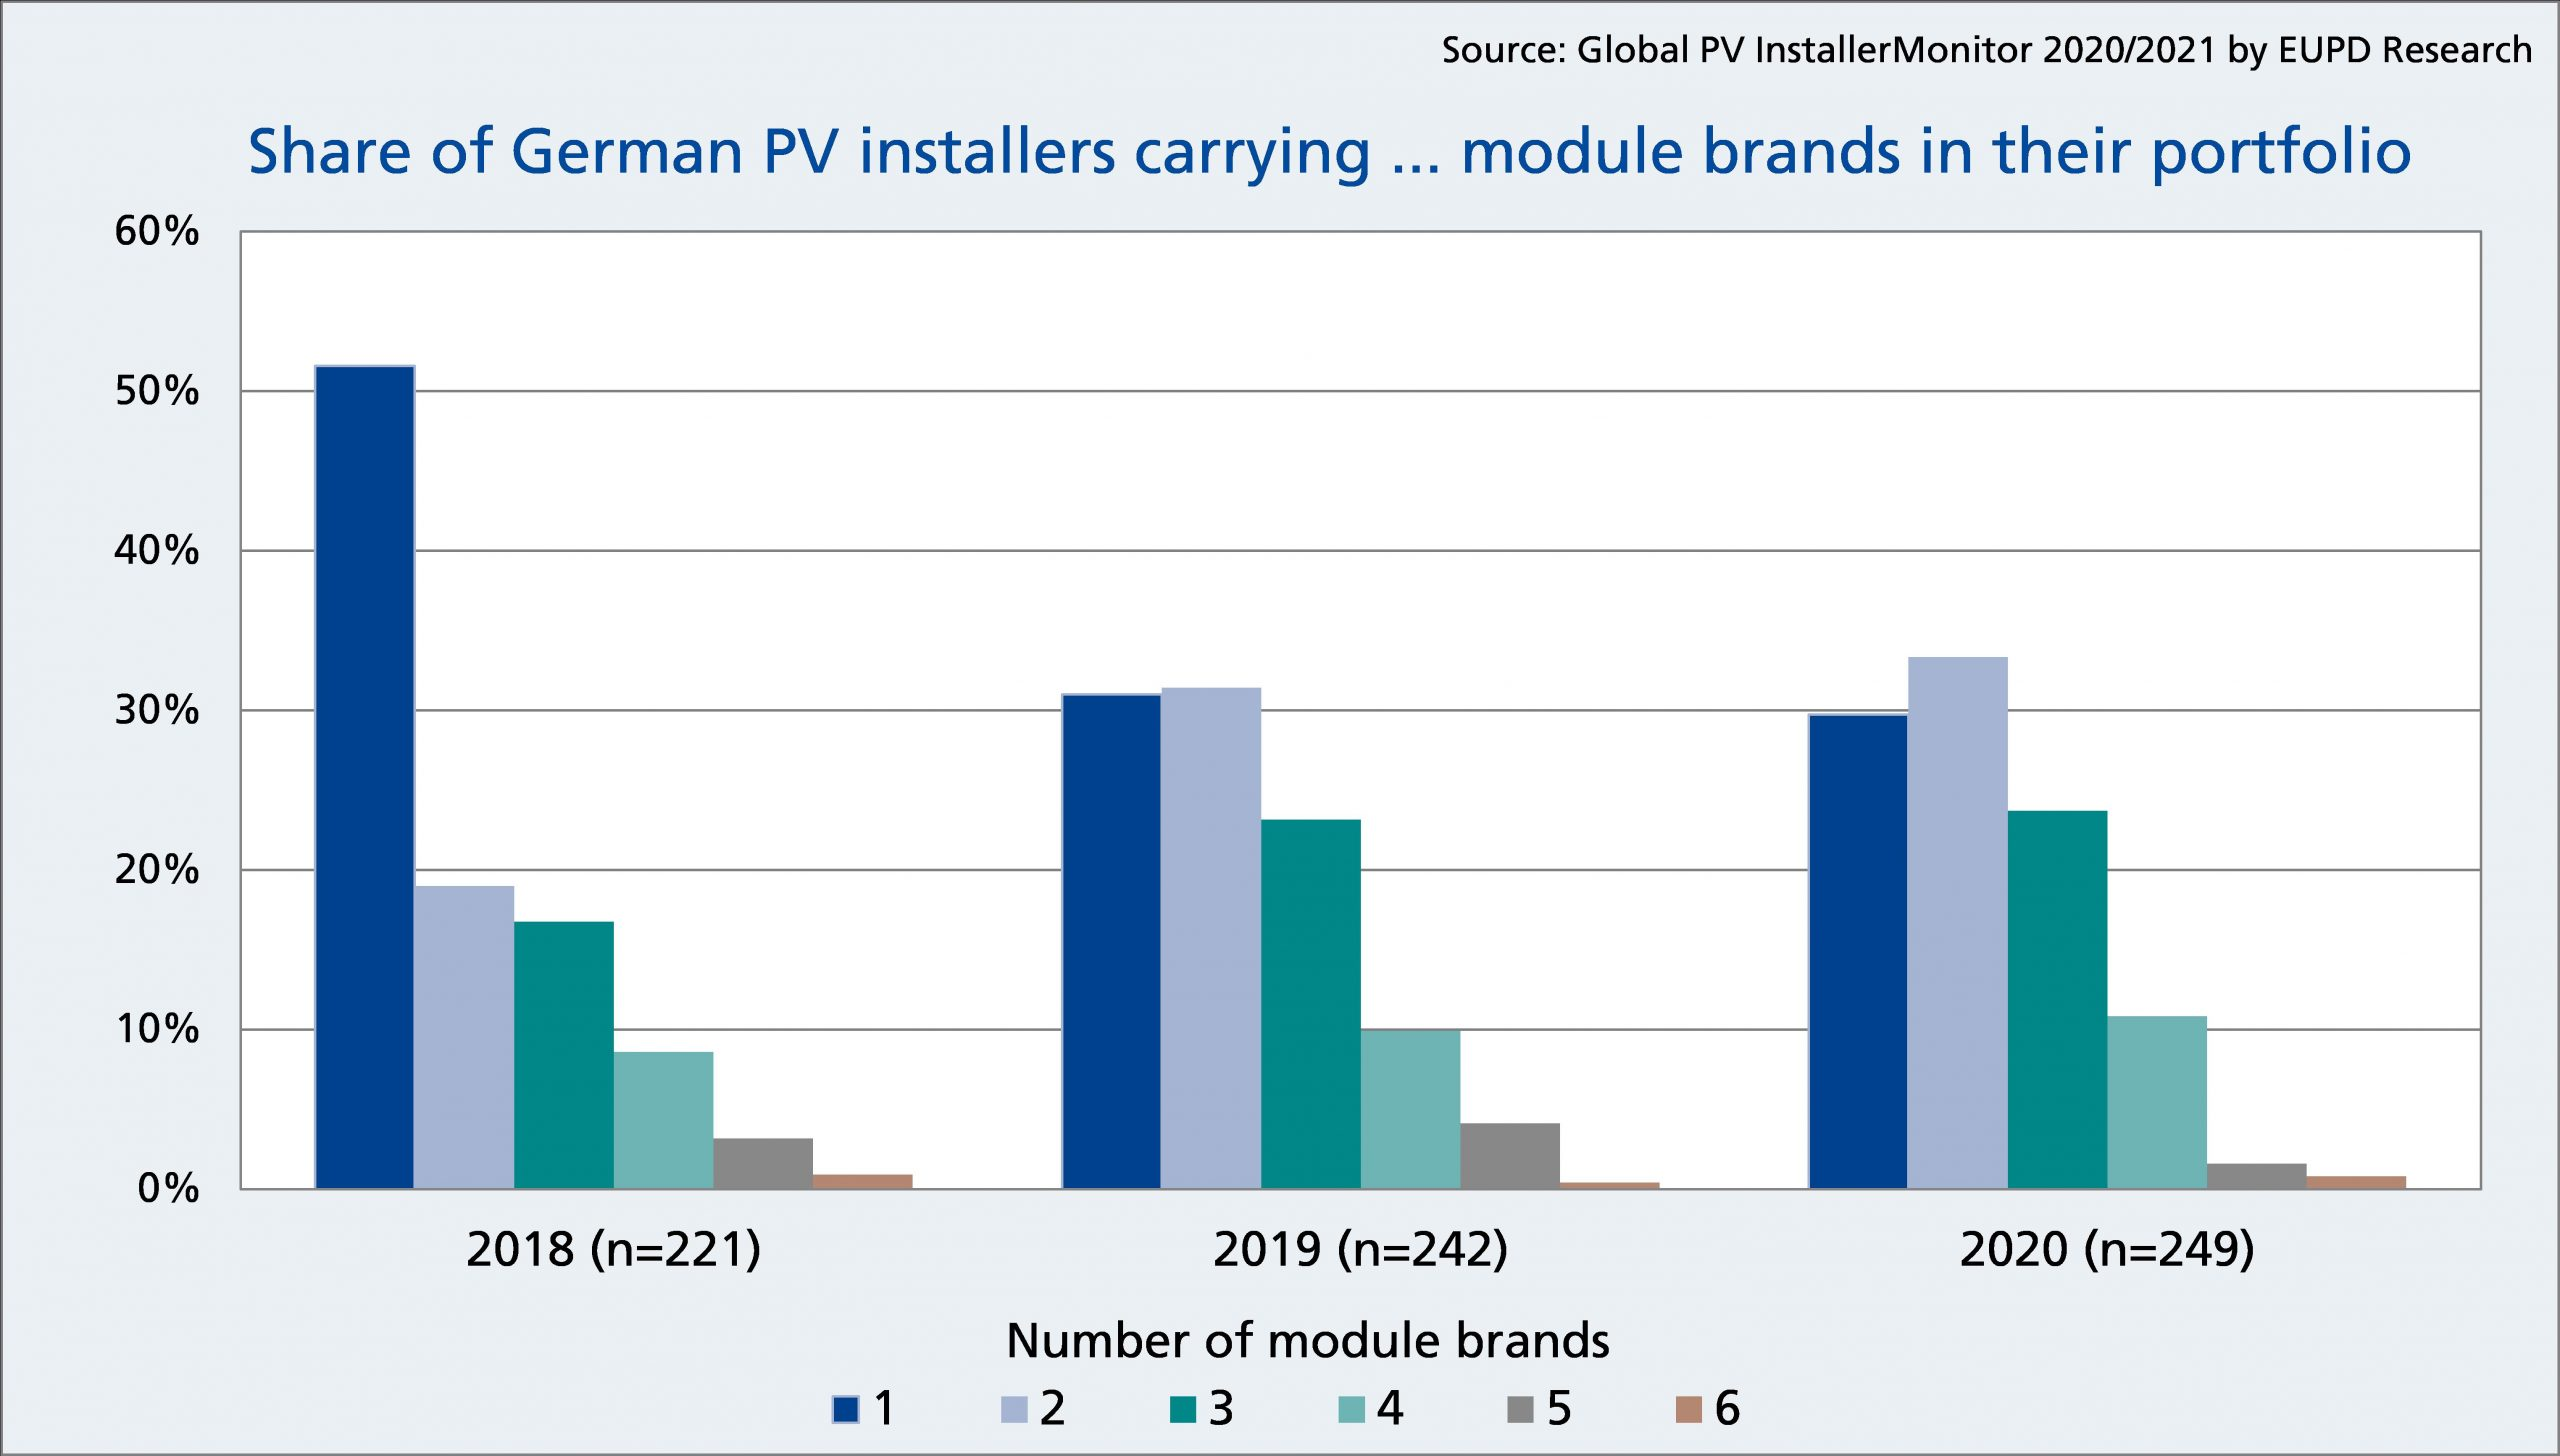 Share of PV installers in Germany with…. Module brands in their portfolio. Number of module brands